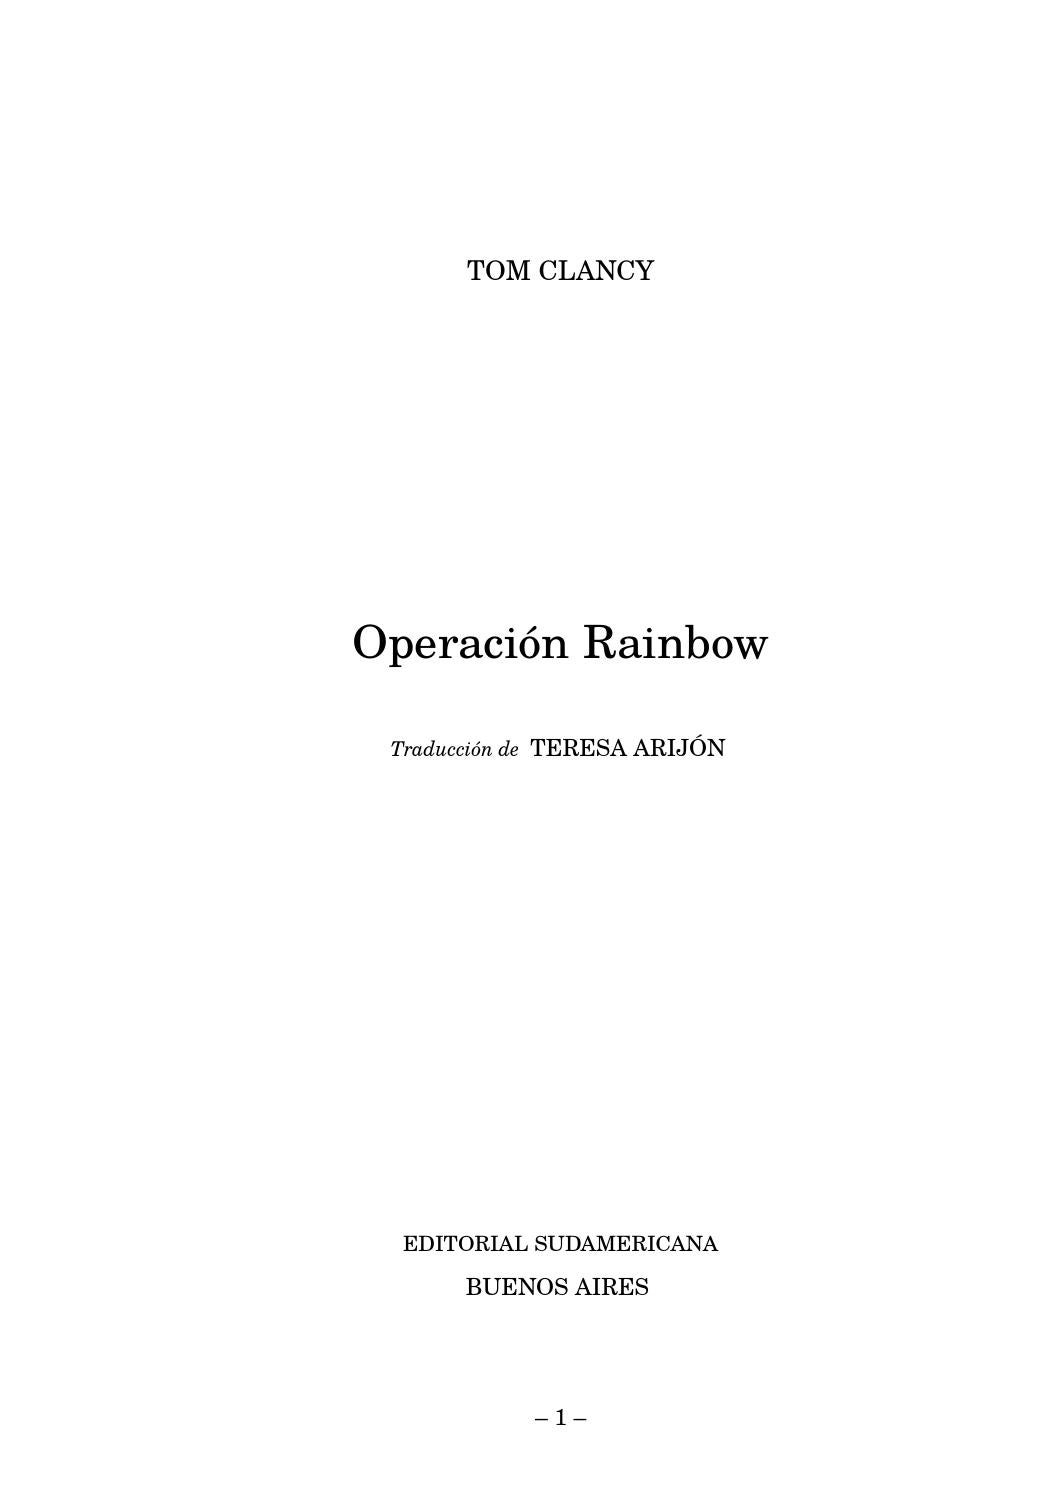 Clancy t 11 operacion rainbow  pages 1 486  by elvasco - issuu abdc1d320bb0